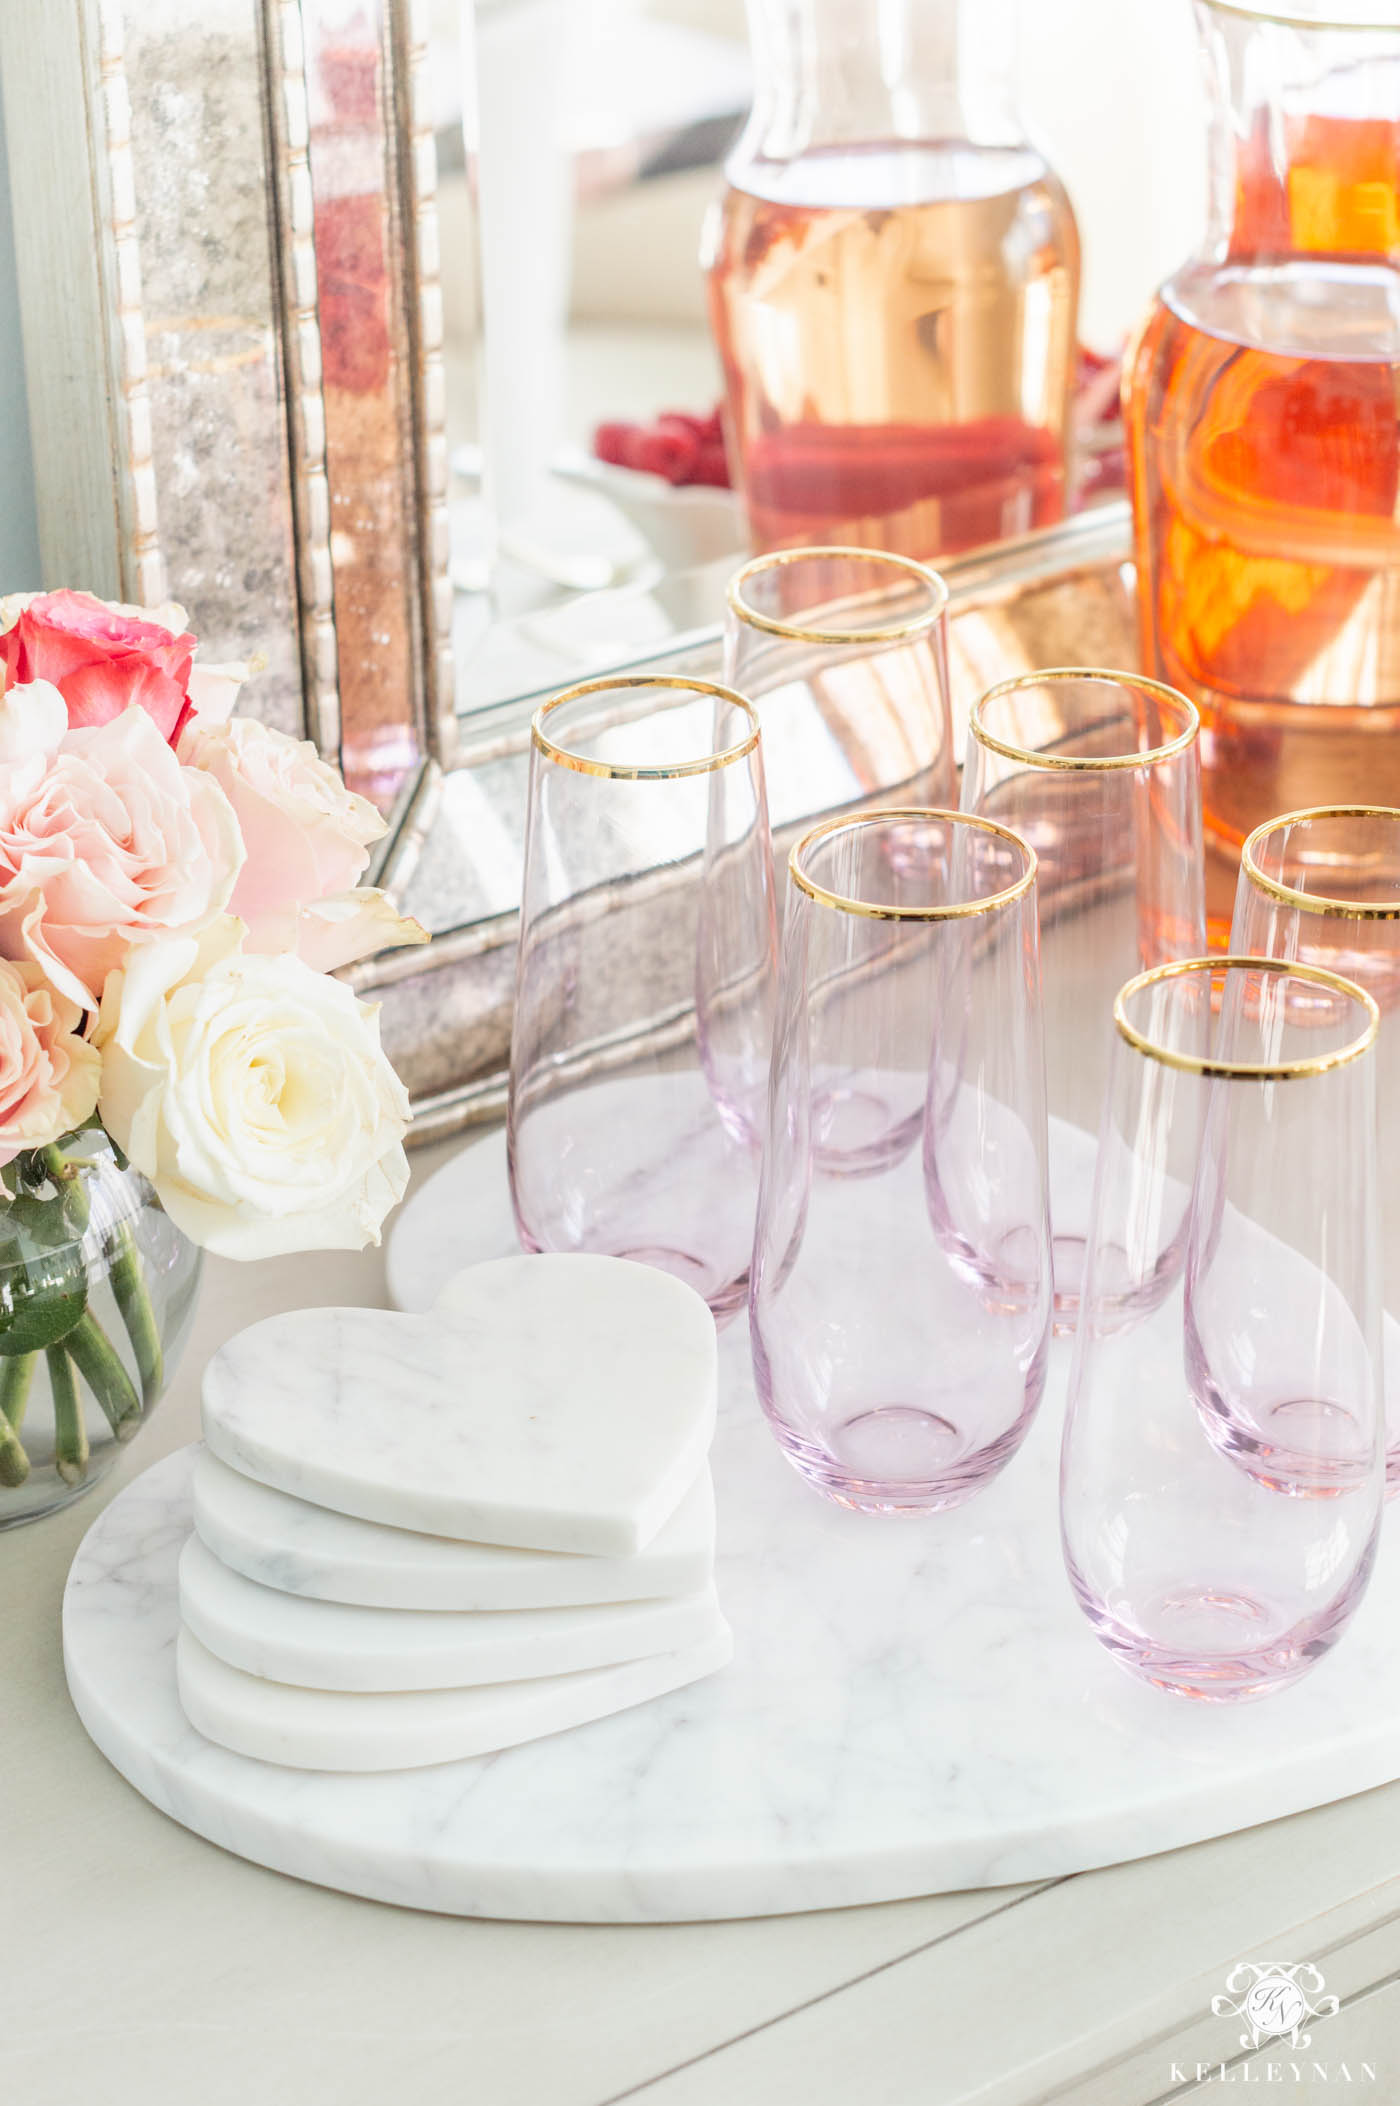 The Perfect Mimosa Bar with Ideas for Bridal Showers, Engagement Parties, and more!